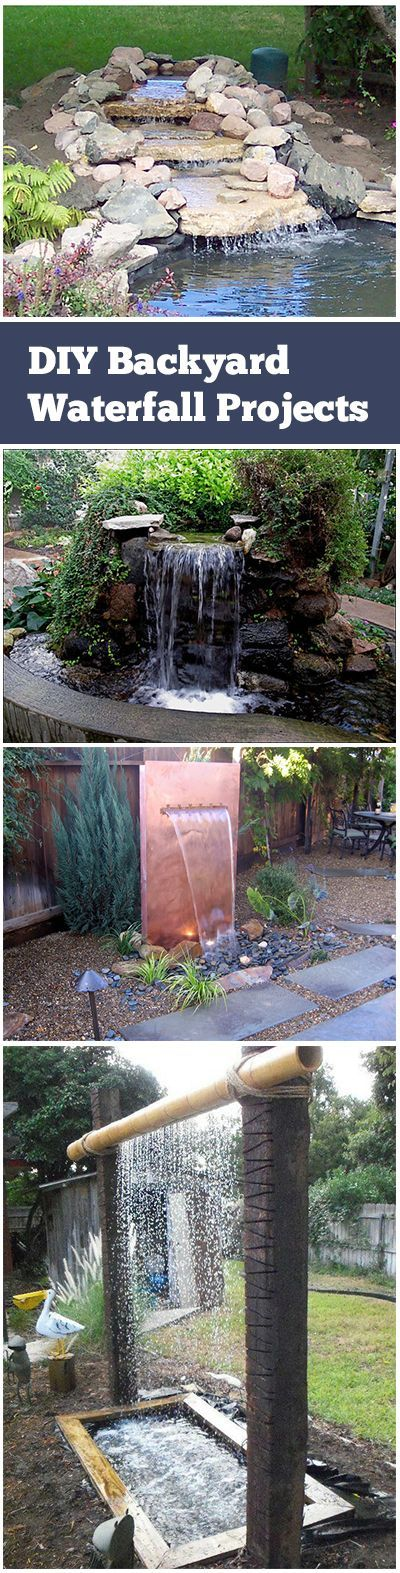 DIY-Backyard-Waterfall-Projects-1.jpg 400×1,573 pixeles